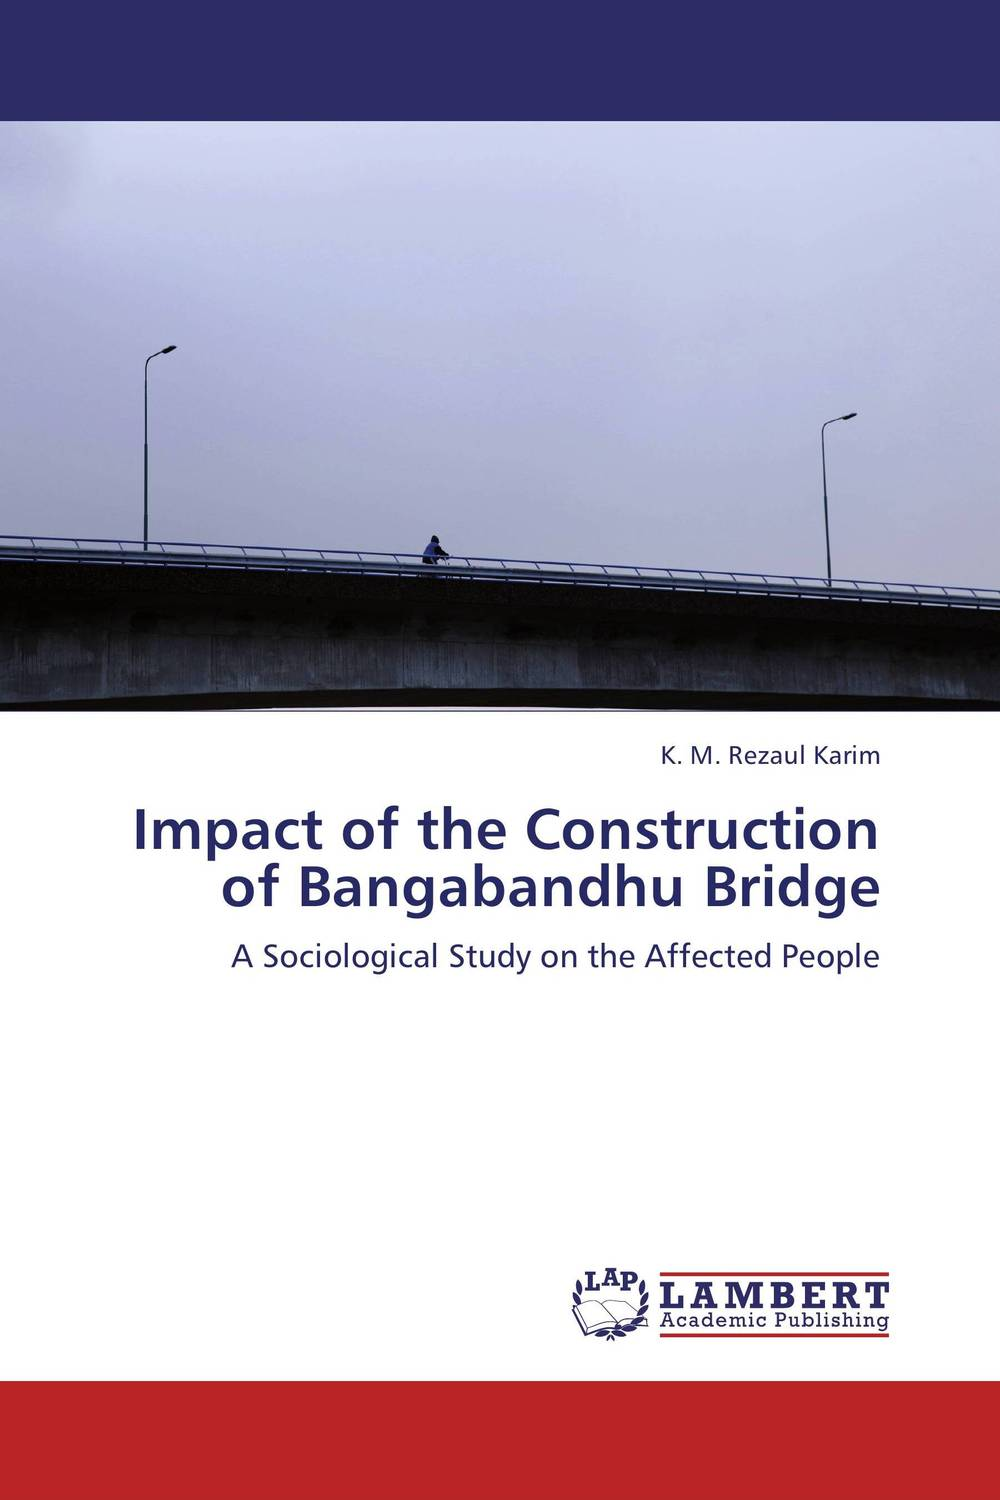 Impact of the Construction of Bangabandhu Bridge the heir